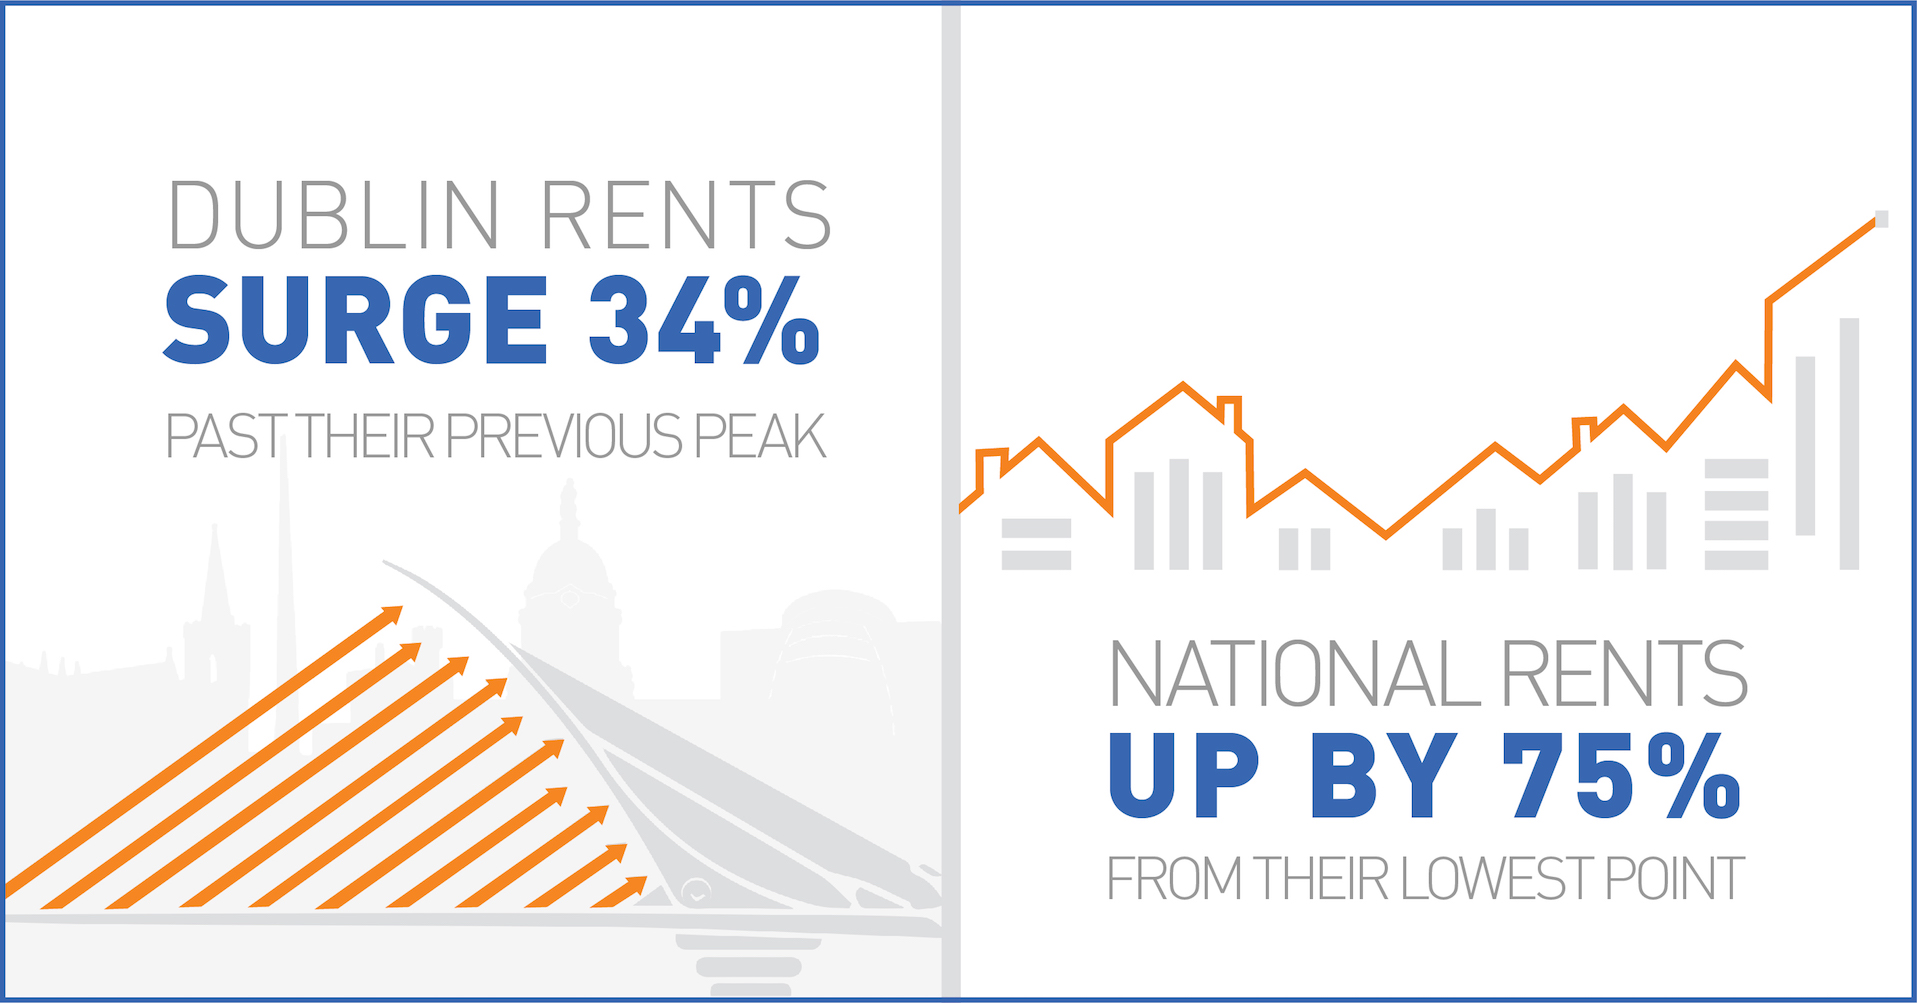 Dublin and National rents surging upwards